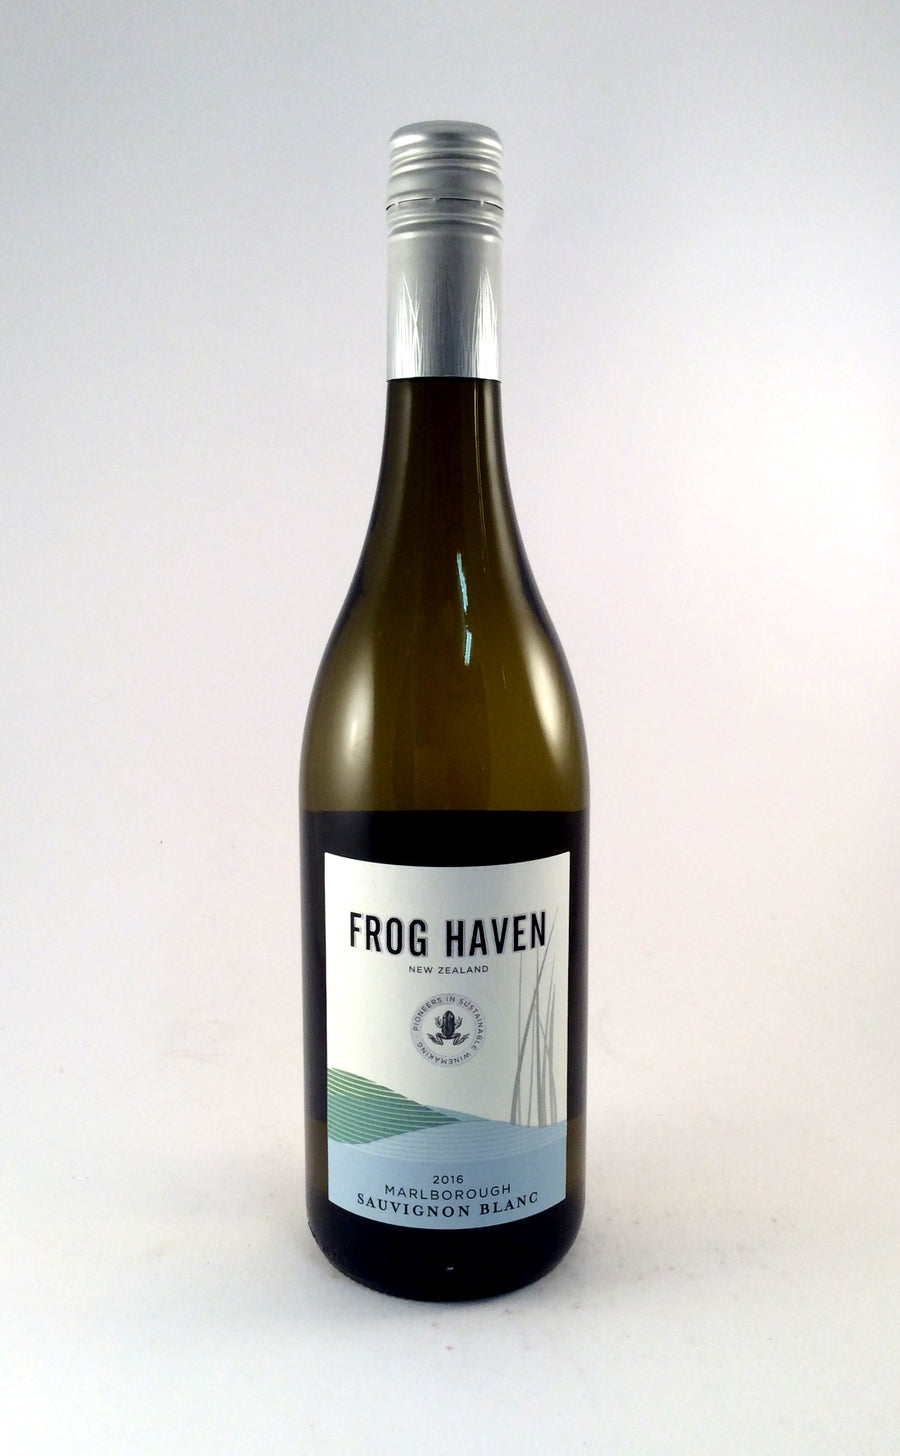 Frog Haven Sauvignon Blanc - Wineseeker